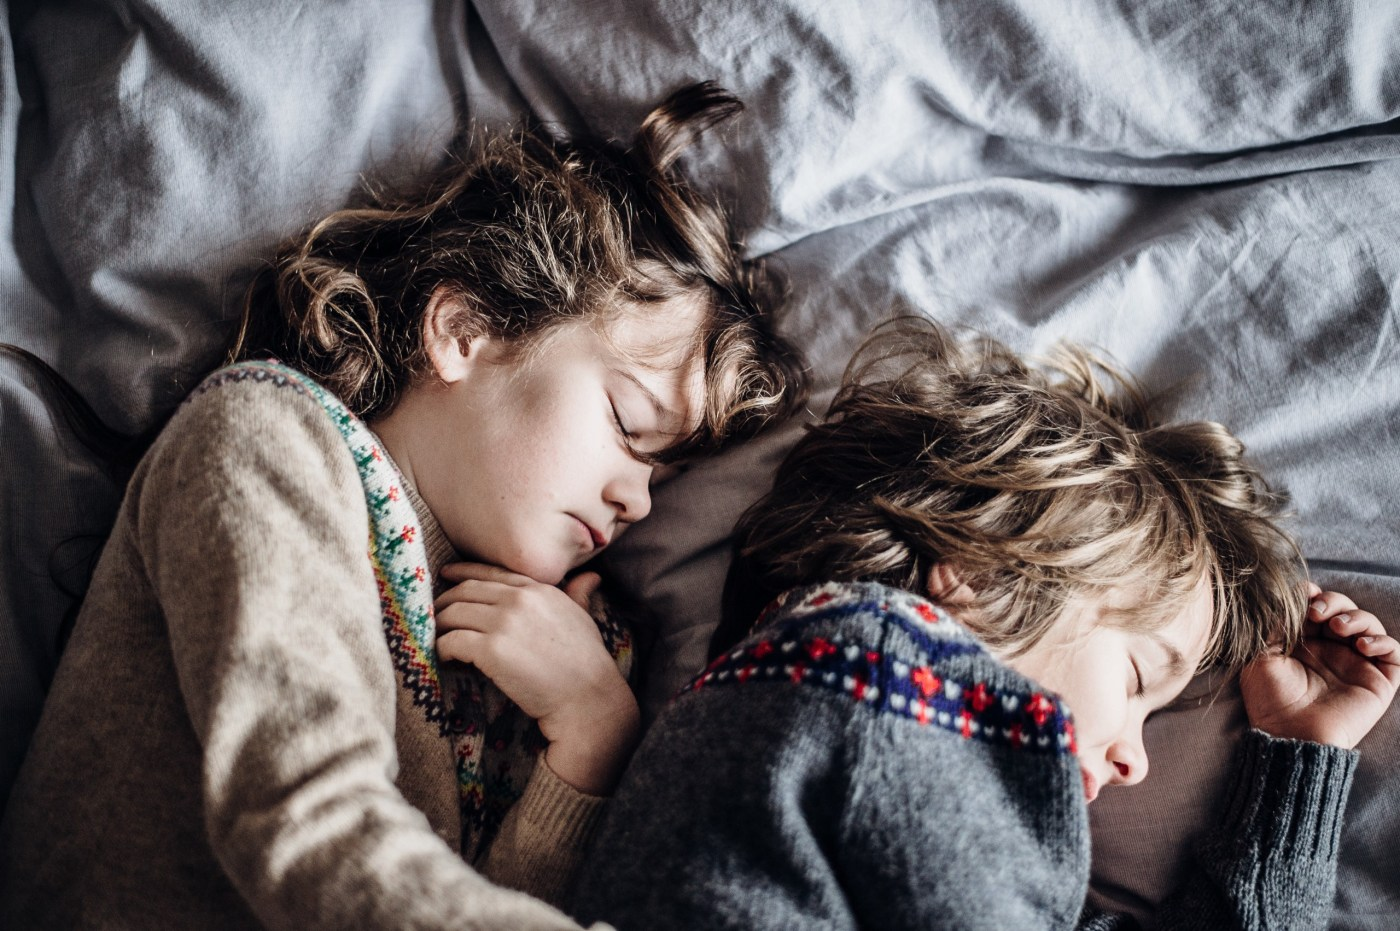 Two children asleep in bed next to each other